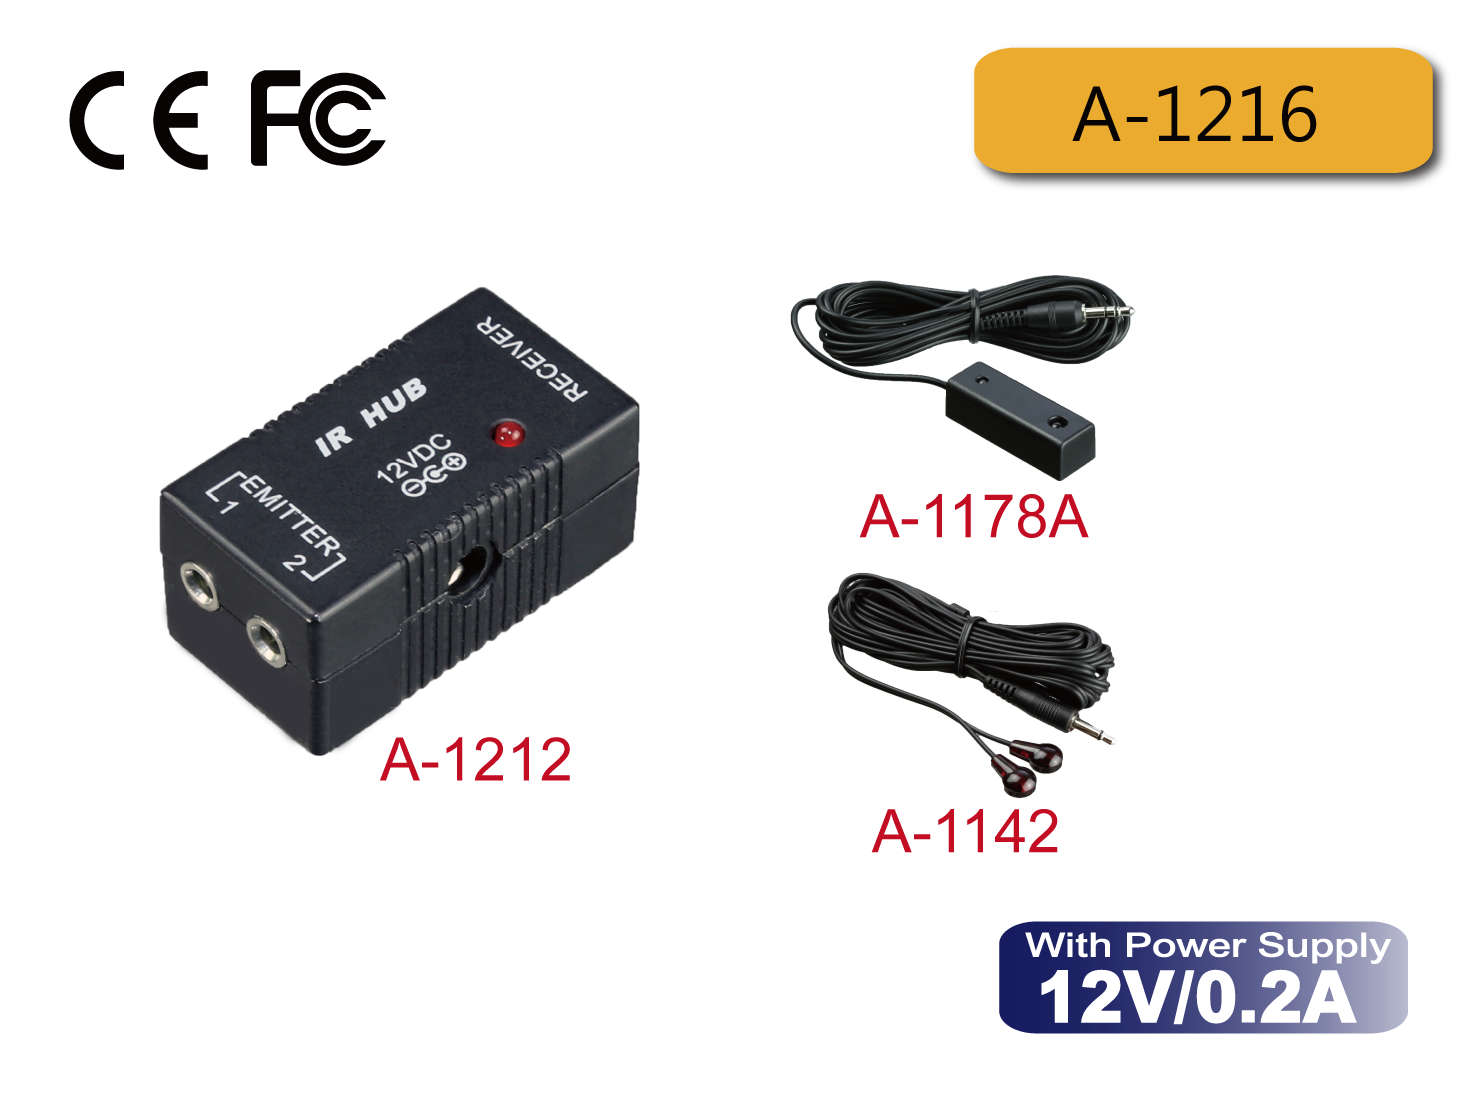 A-1216 : Basic IR Repeater Kit